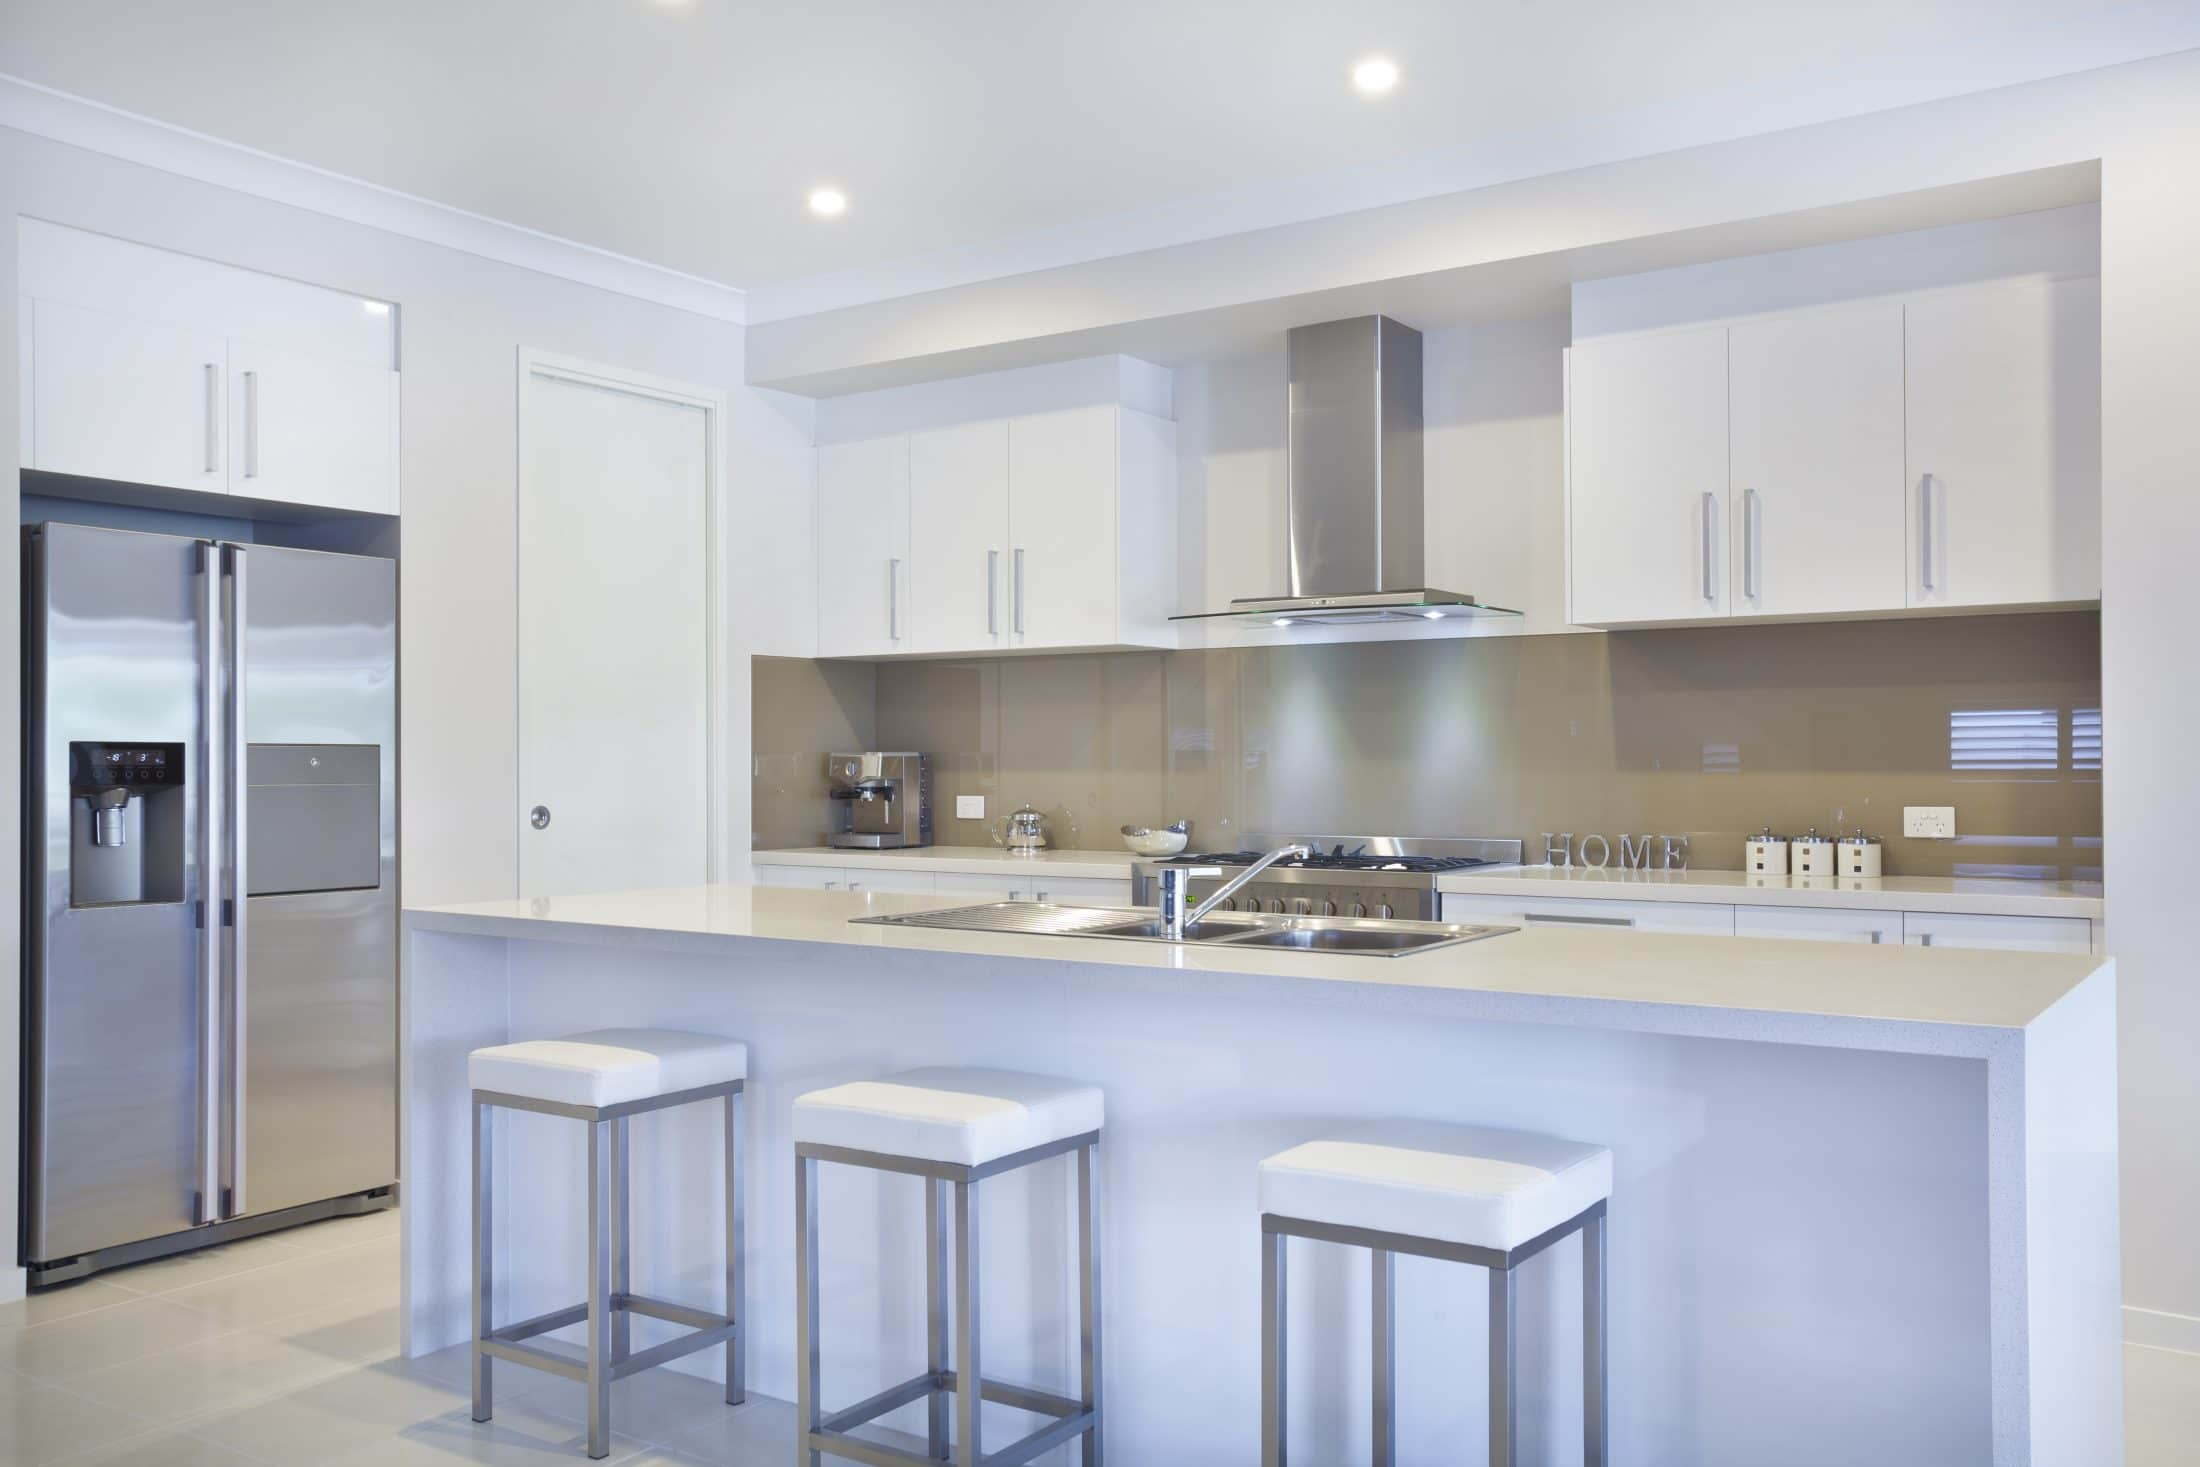 Quick kitchens Caboolture